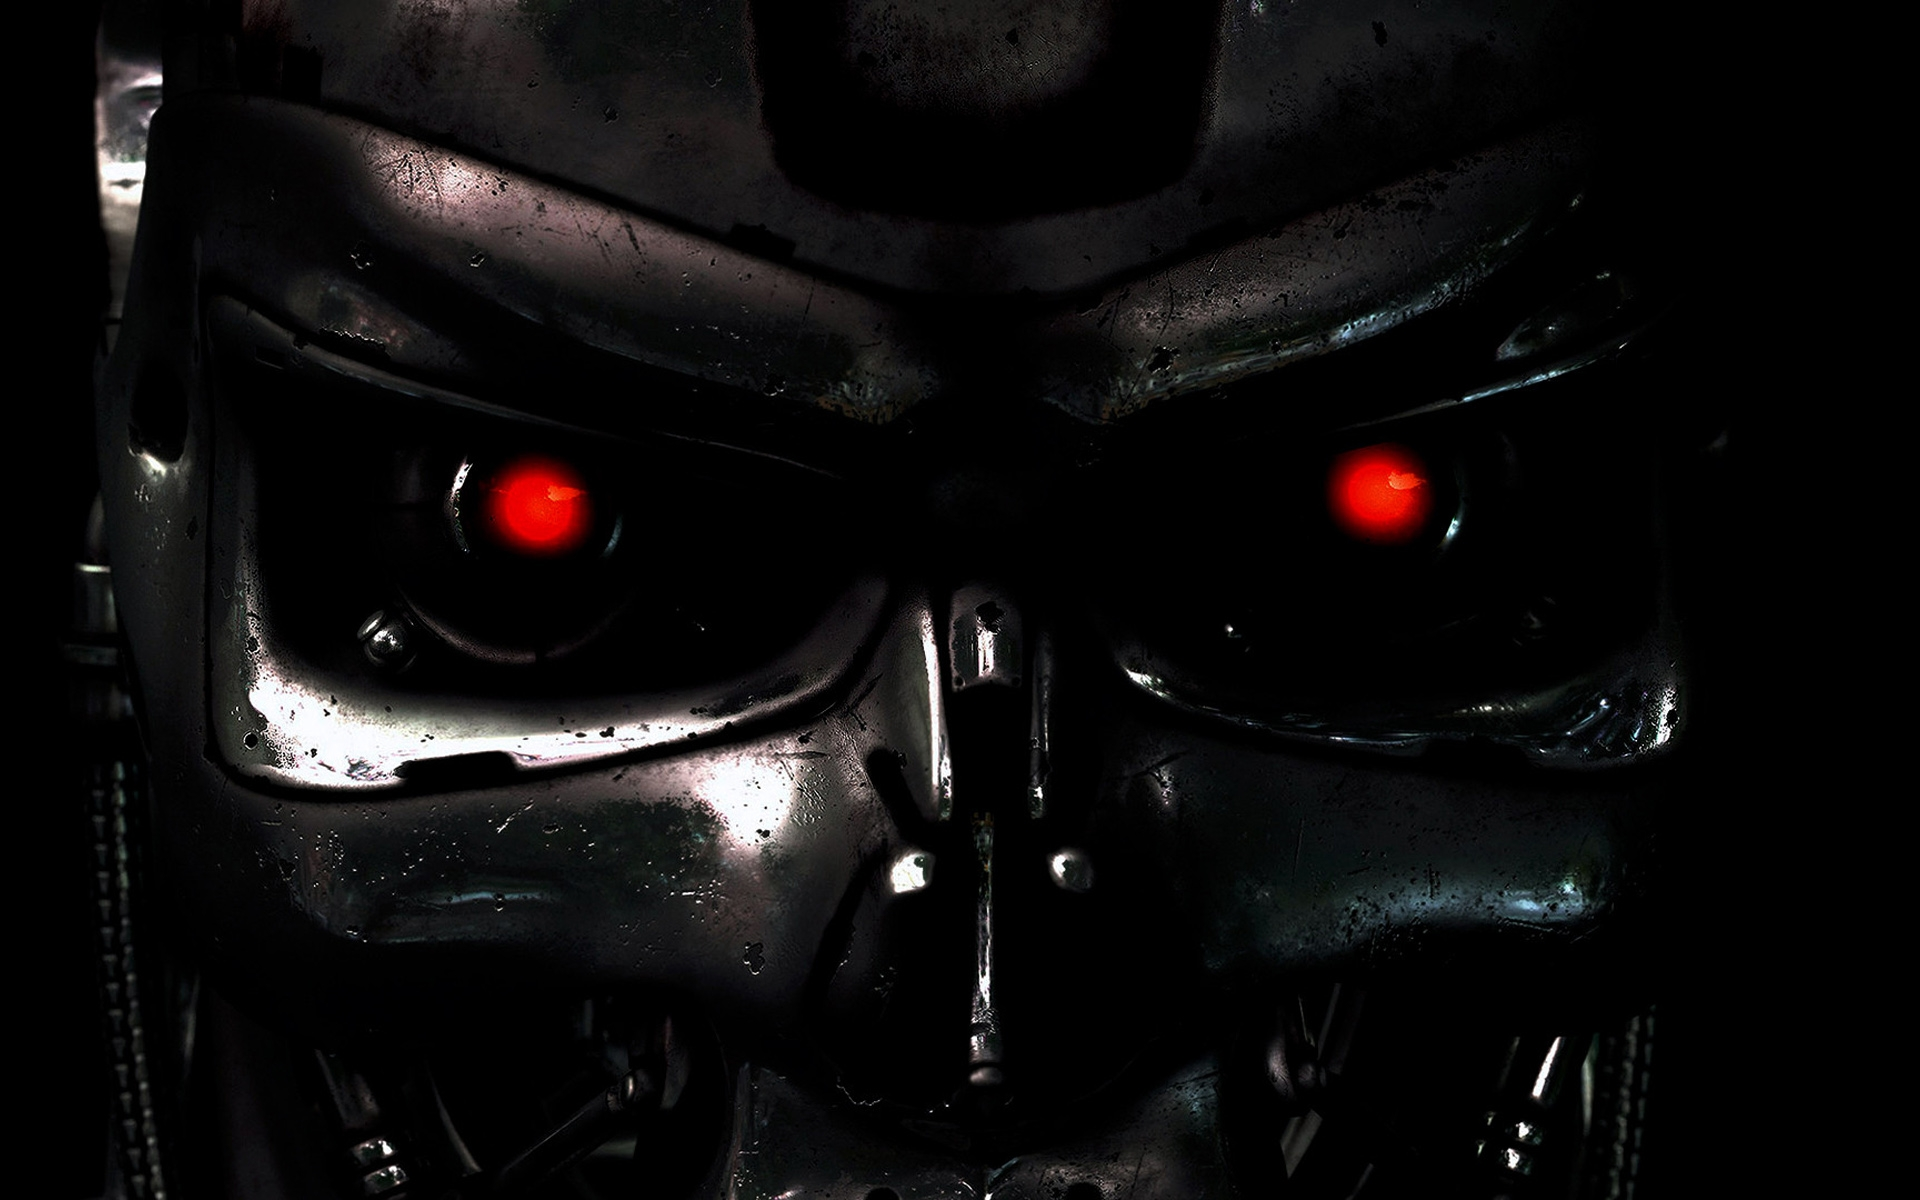 Free Download Abstract Wallpaper Terminator Red Eyes Hd